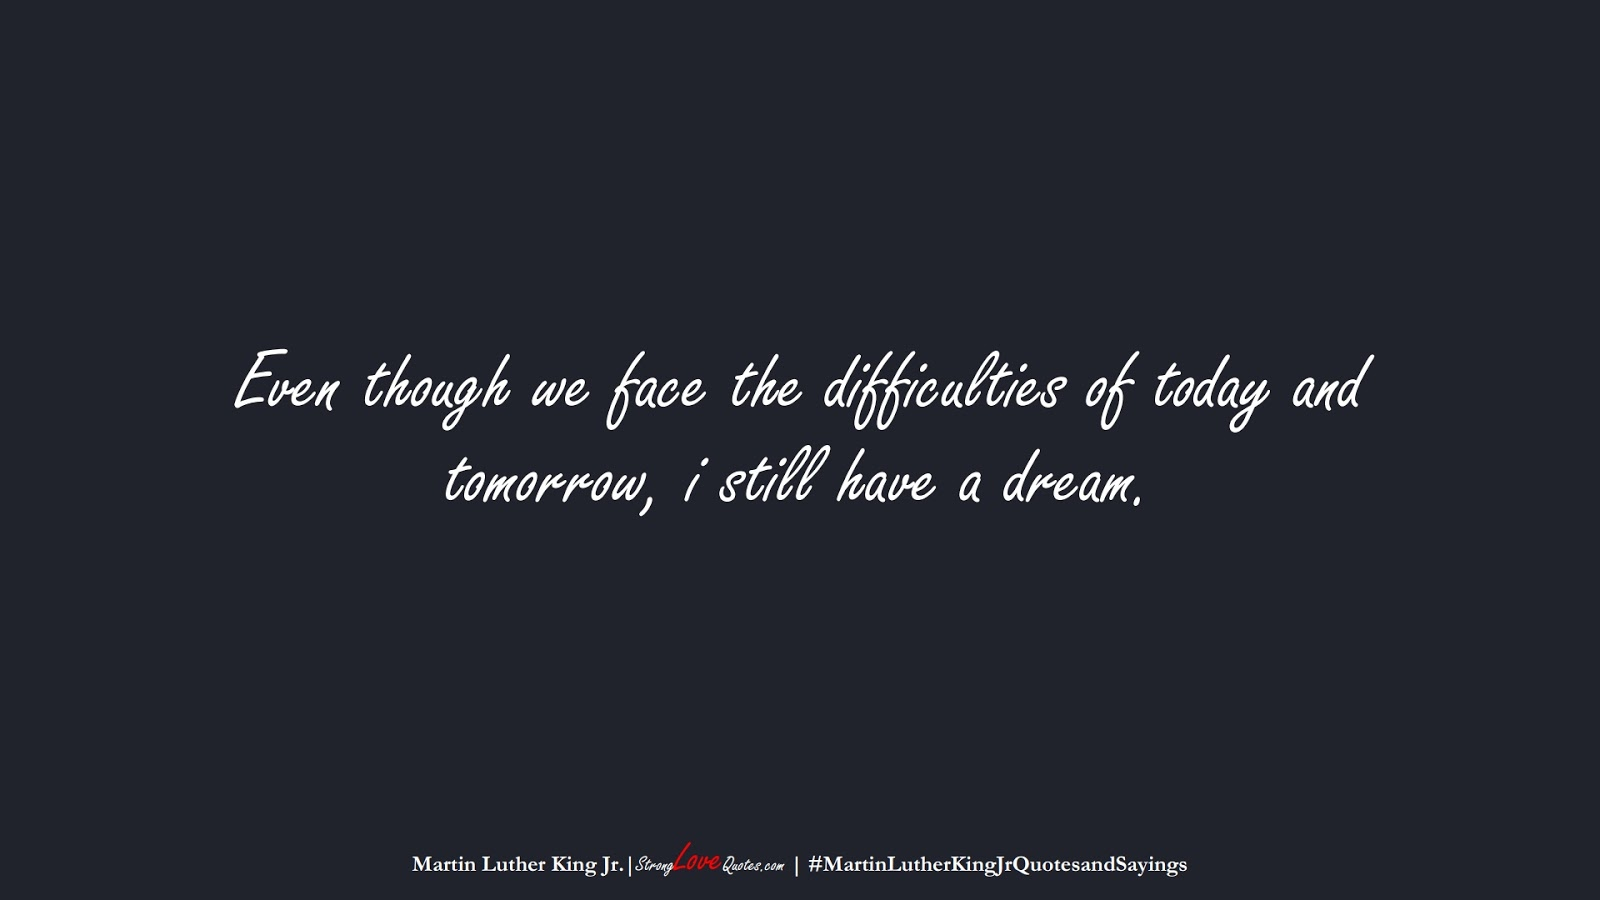 Even though we face the difficulties of today and tomorrow, i still have a dream. (Martin Luther King Jr.);  #MartinLutherKingJrQuotesandSayings